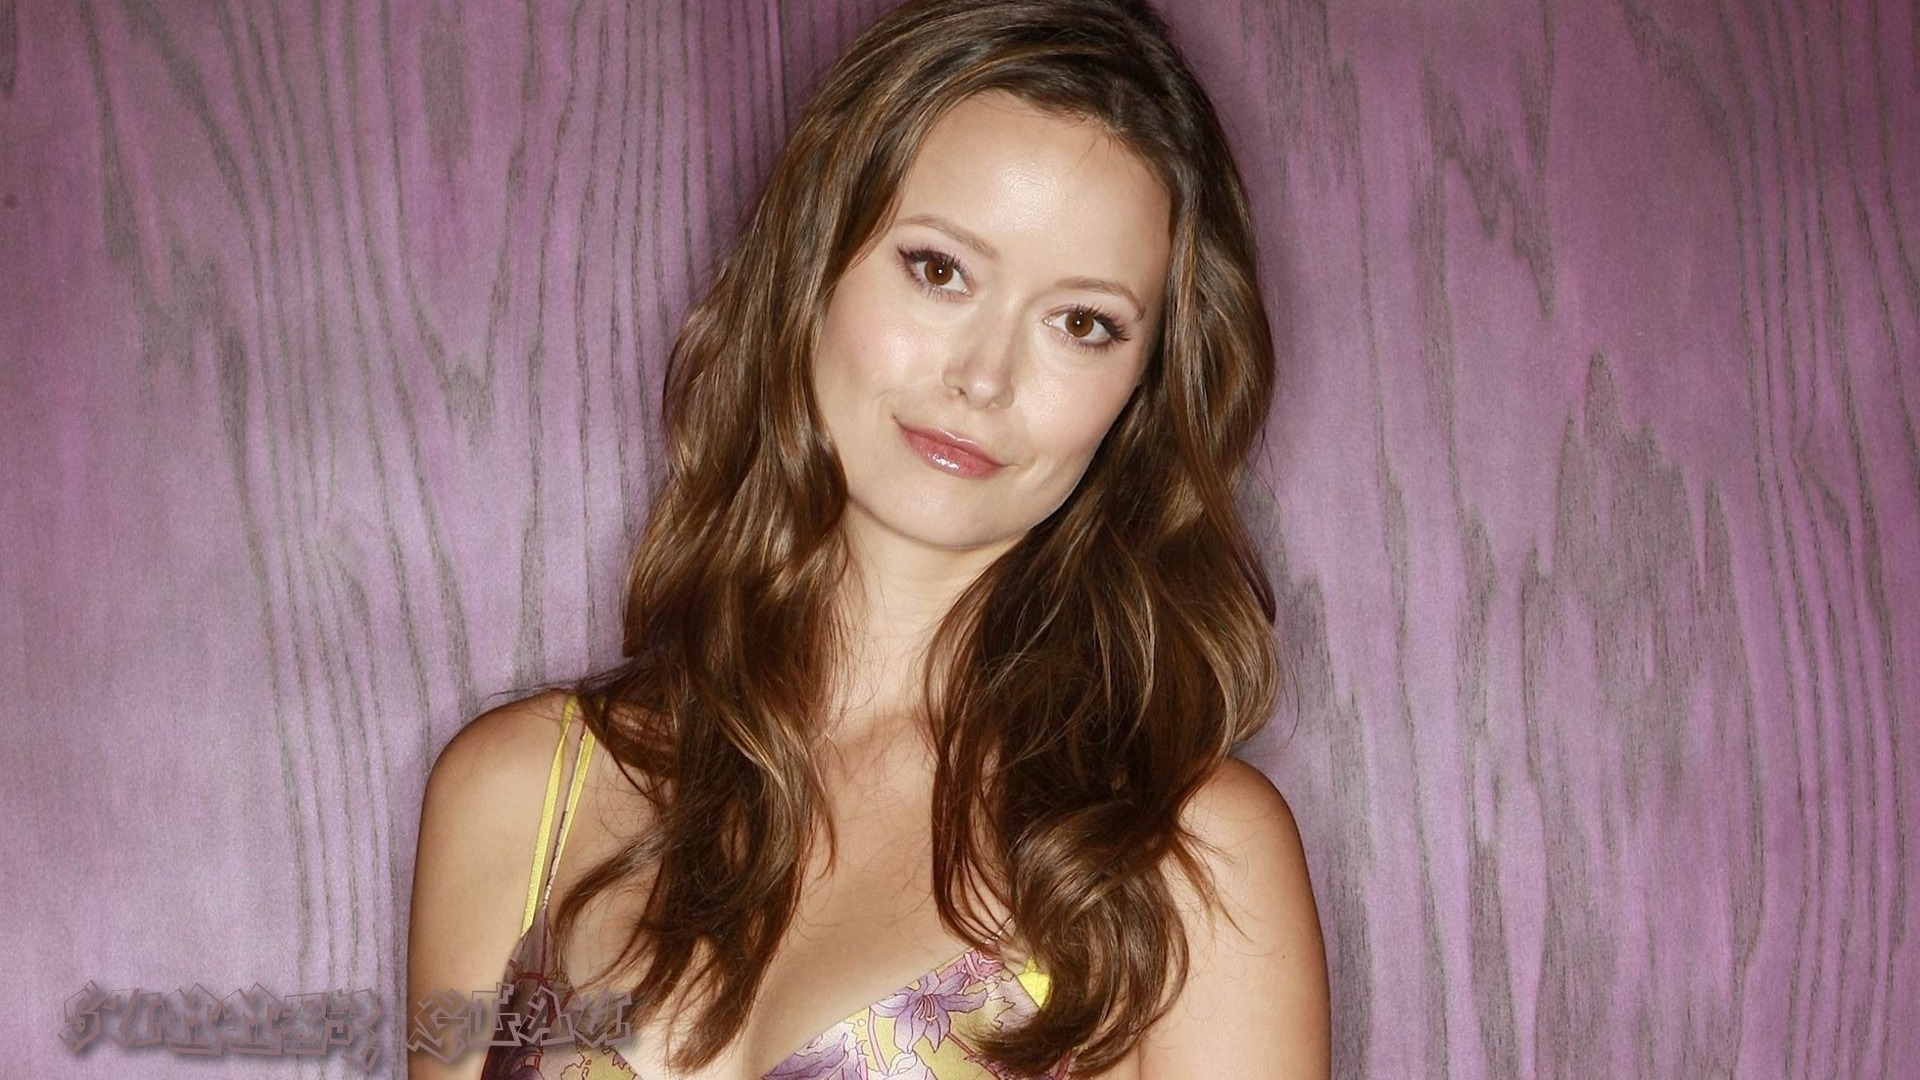 Summer Glau #007 - 1920x1080 Wallpapers Pictures Photos Images